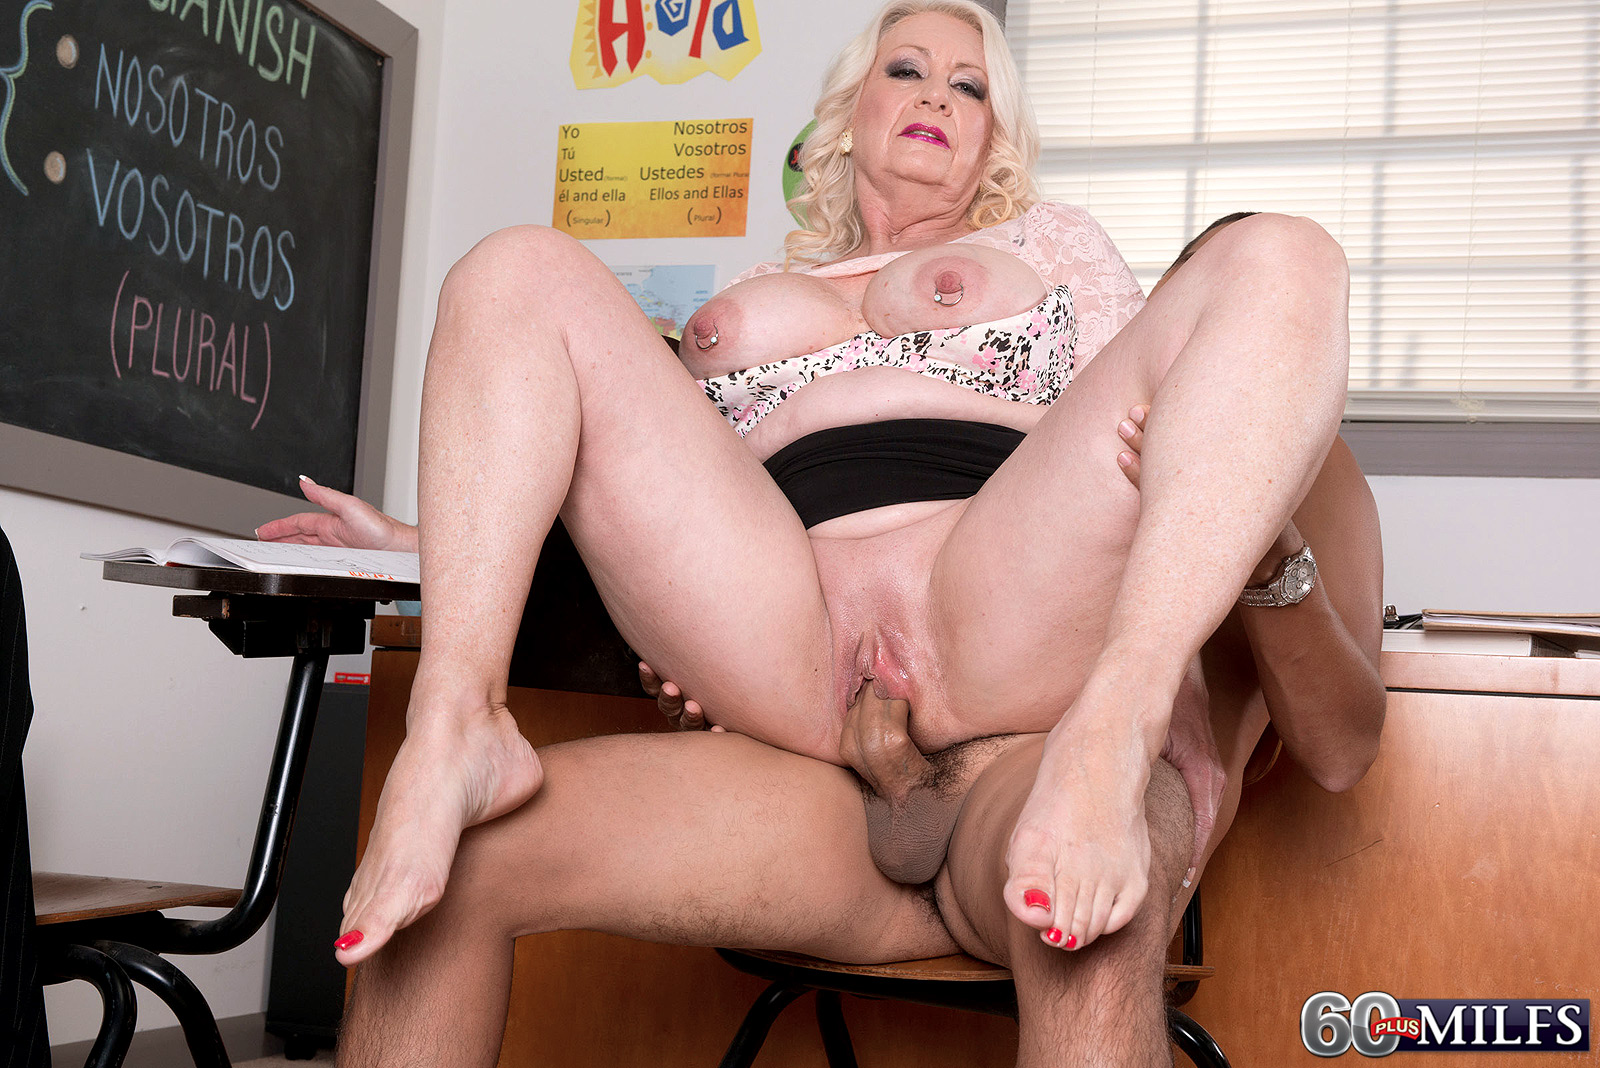 Wet amateur blonde toys herself to